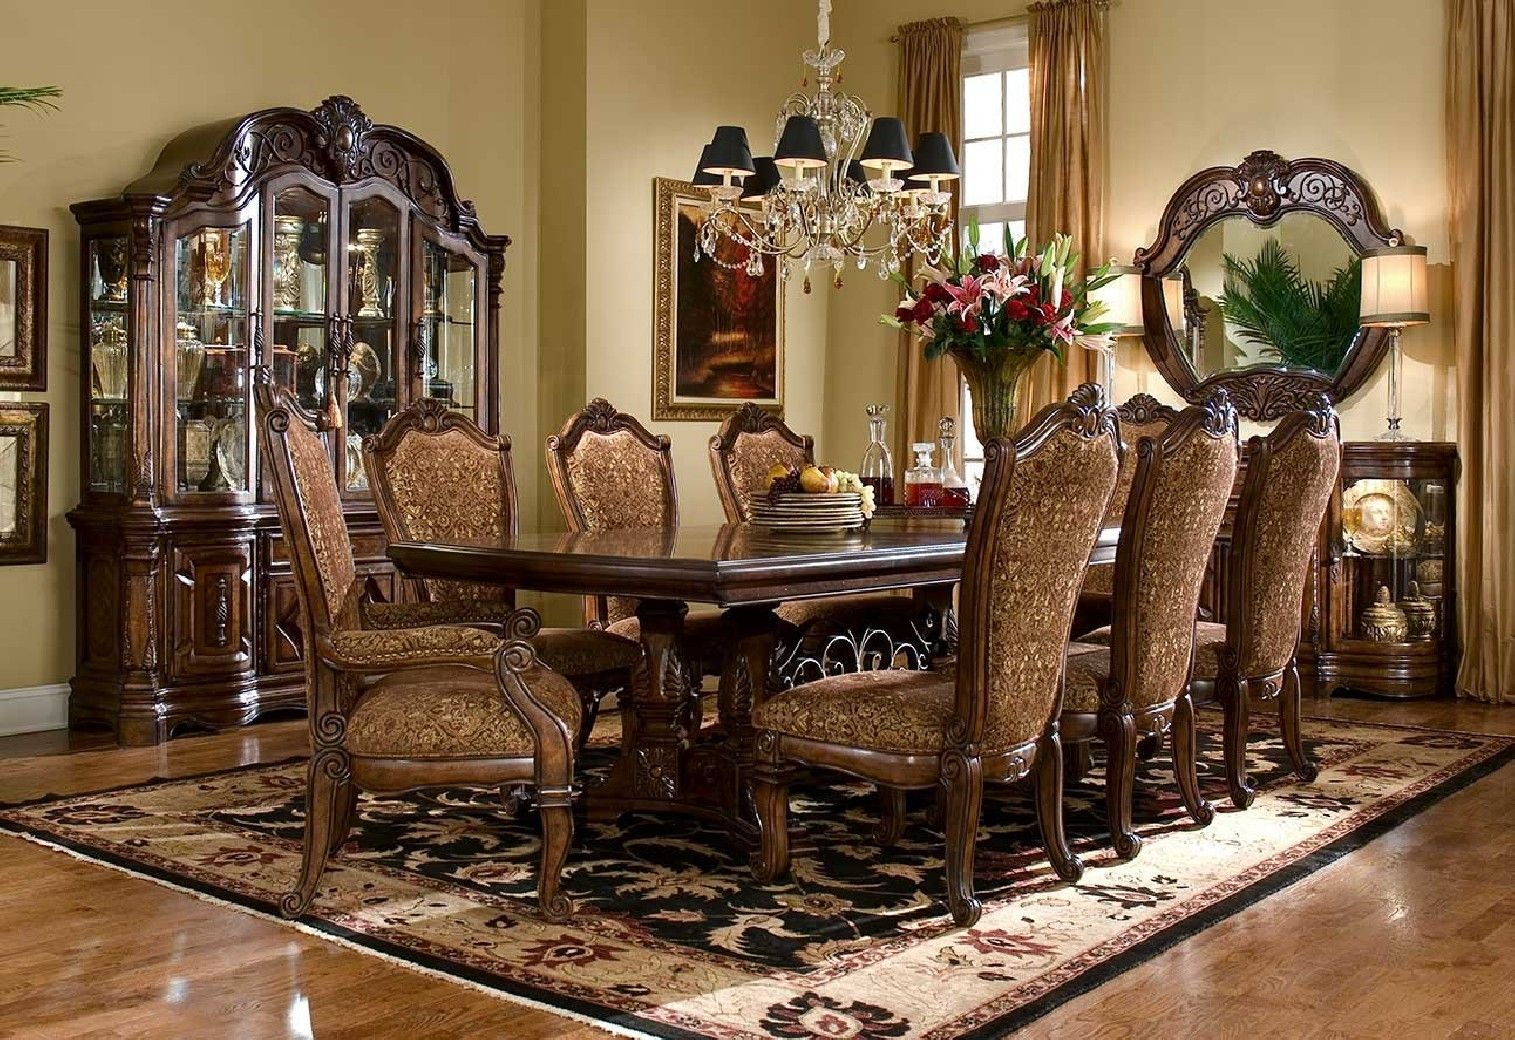 Aico Furniture Savings The World If Michael Amini Amini Furniture For Less Deluxe Furniture The Be Luxury Dining Room Beautiful Dining Rooms Tuscan Decorating